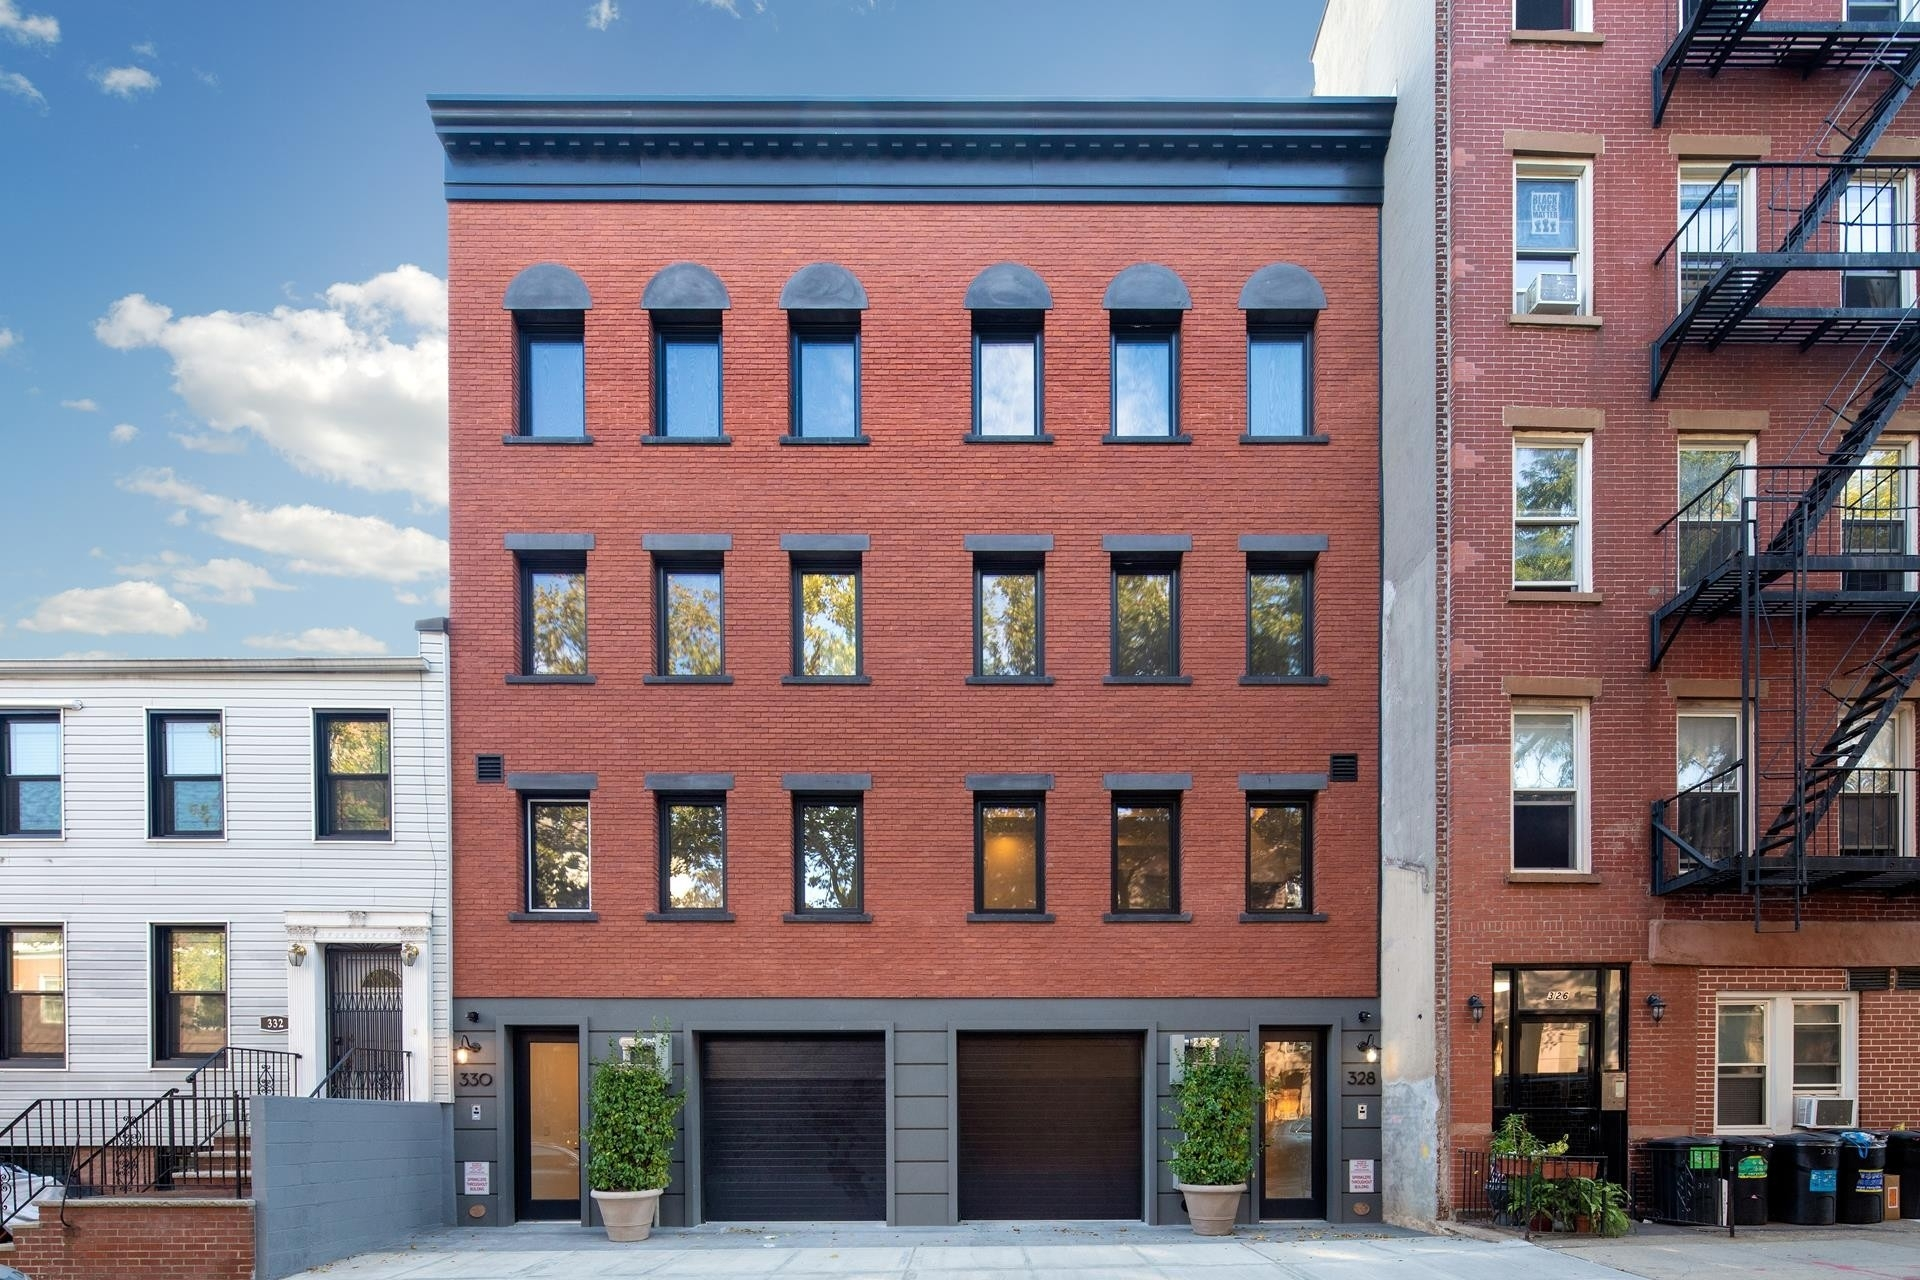 15. Single Family Townhouse for Sale at 330 SACKETT ST , TOWNHOUSE Carroll Gardens, Brooklyn, NY 11231